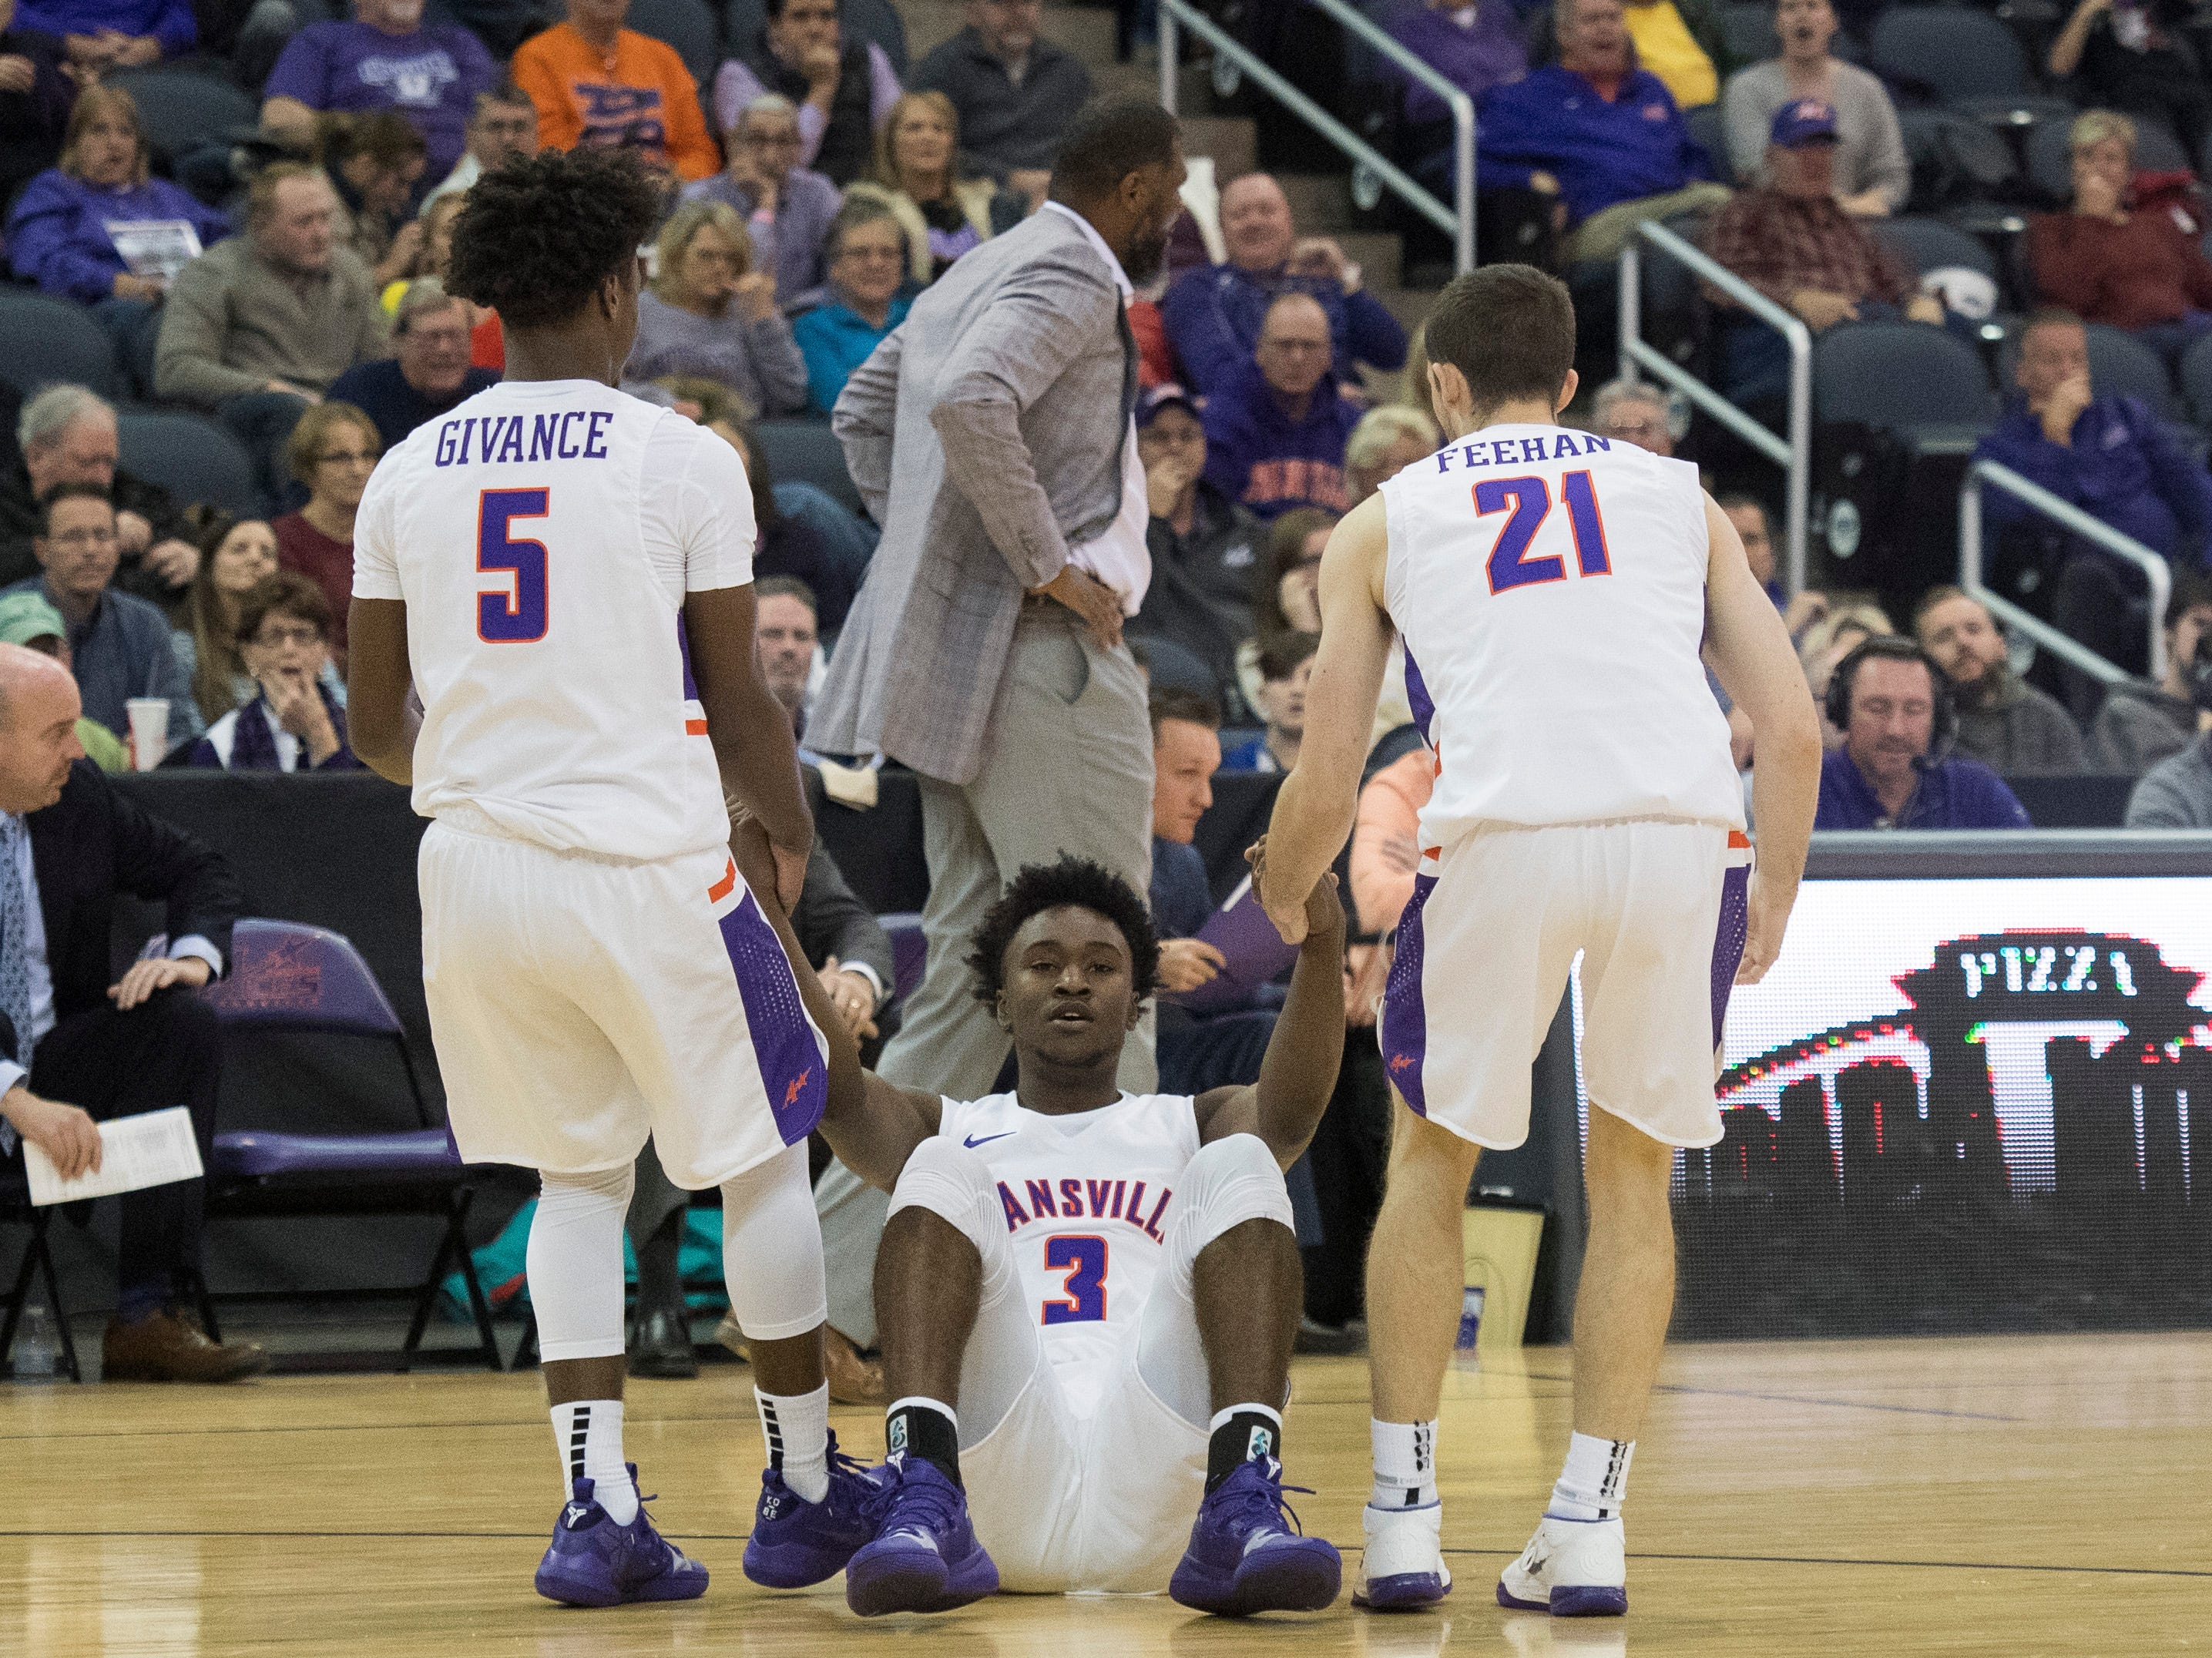 UE's Shamar Givance (5) and Shea Feehan (21) help teammate UE's Jawaun Newton (3) up off the court  during the UE vs Wyoming game at the Ford Center Wednesday, Nov. 28, 2018. UE won 86-76.